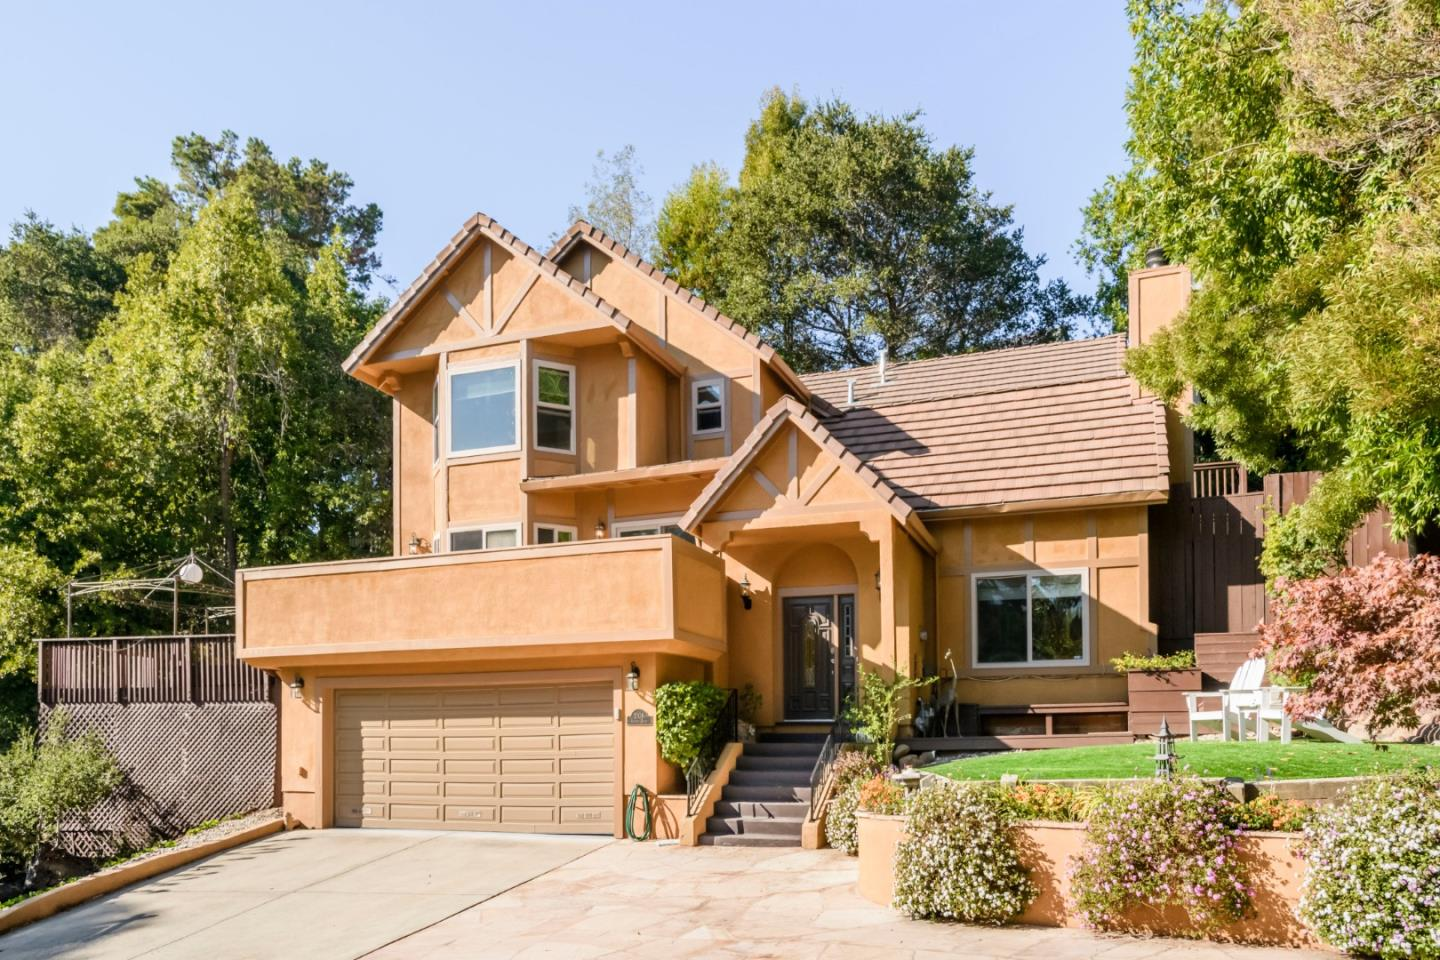 2108 Summit DR, Burlingame, California